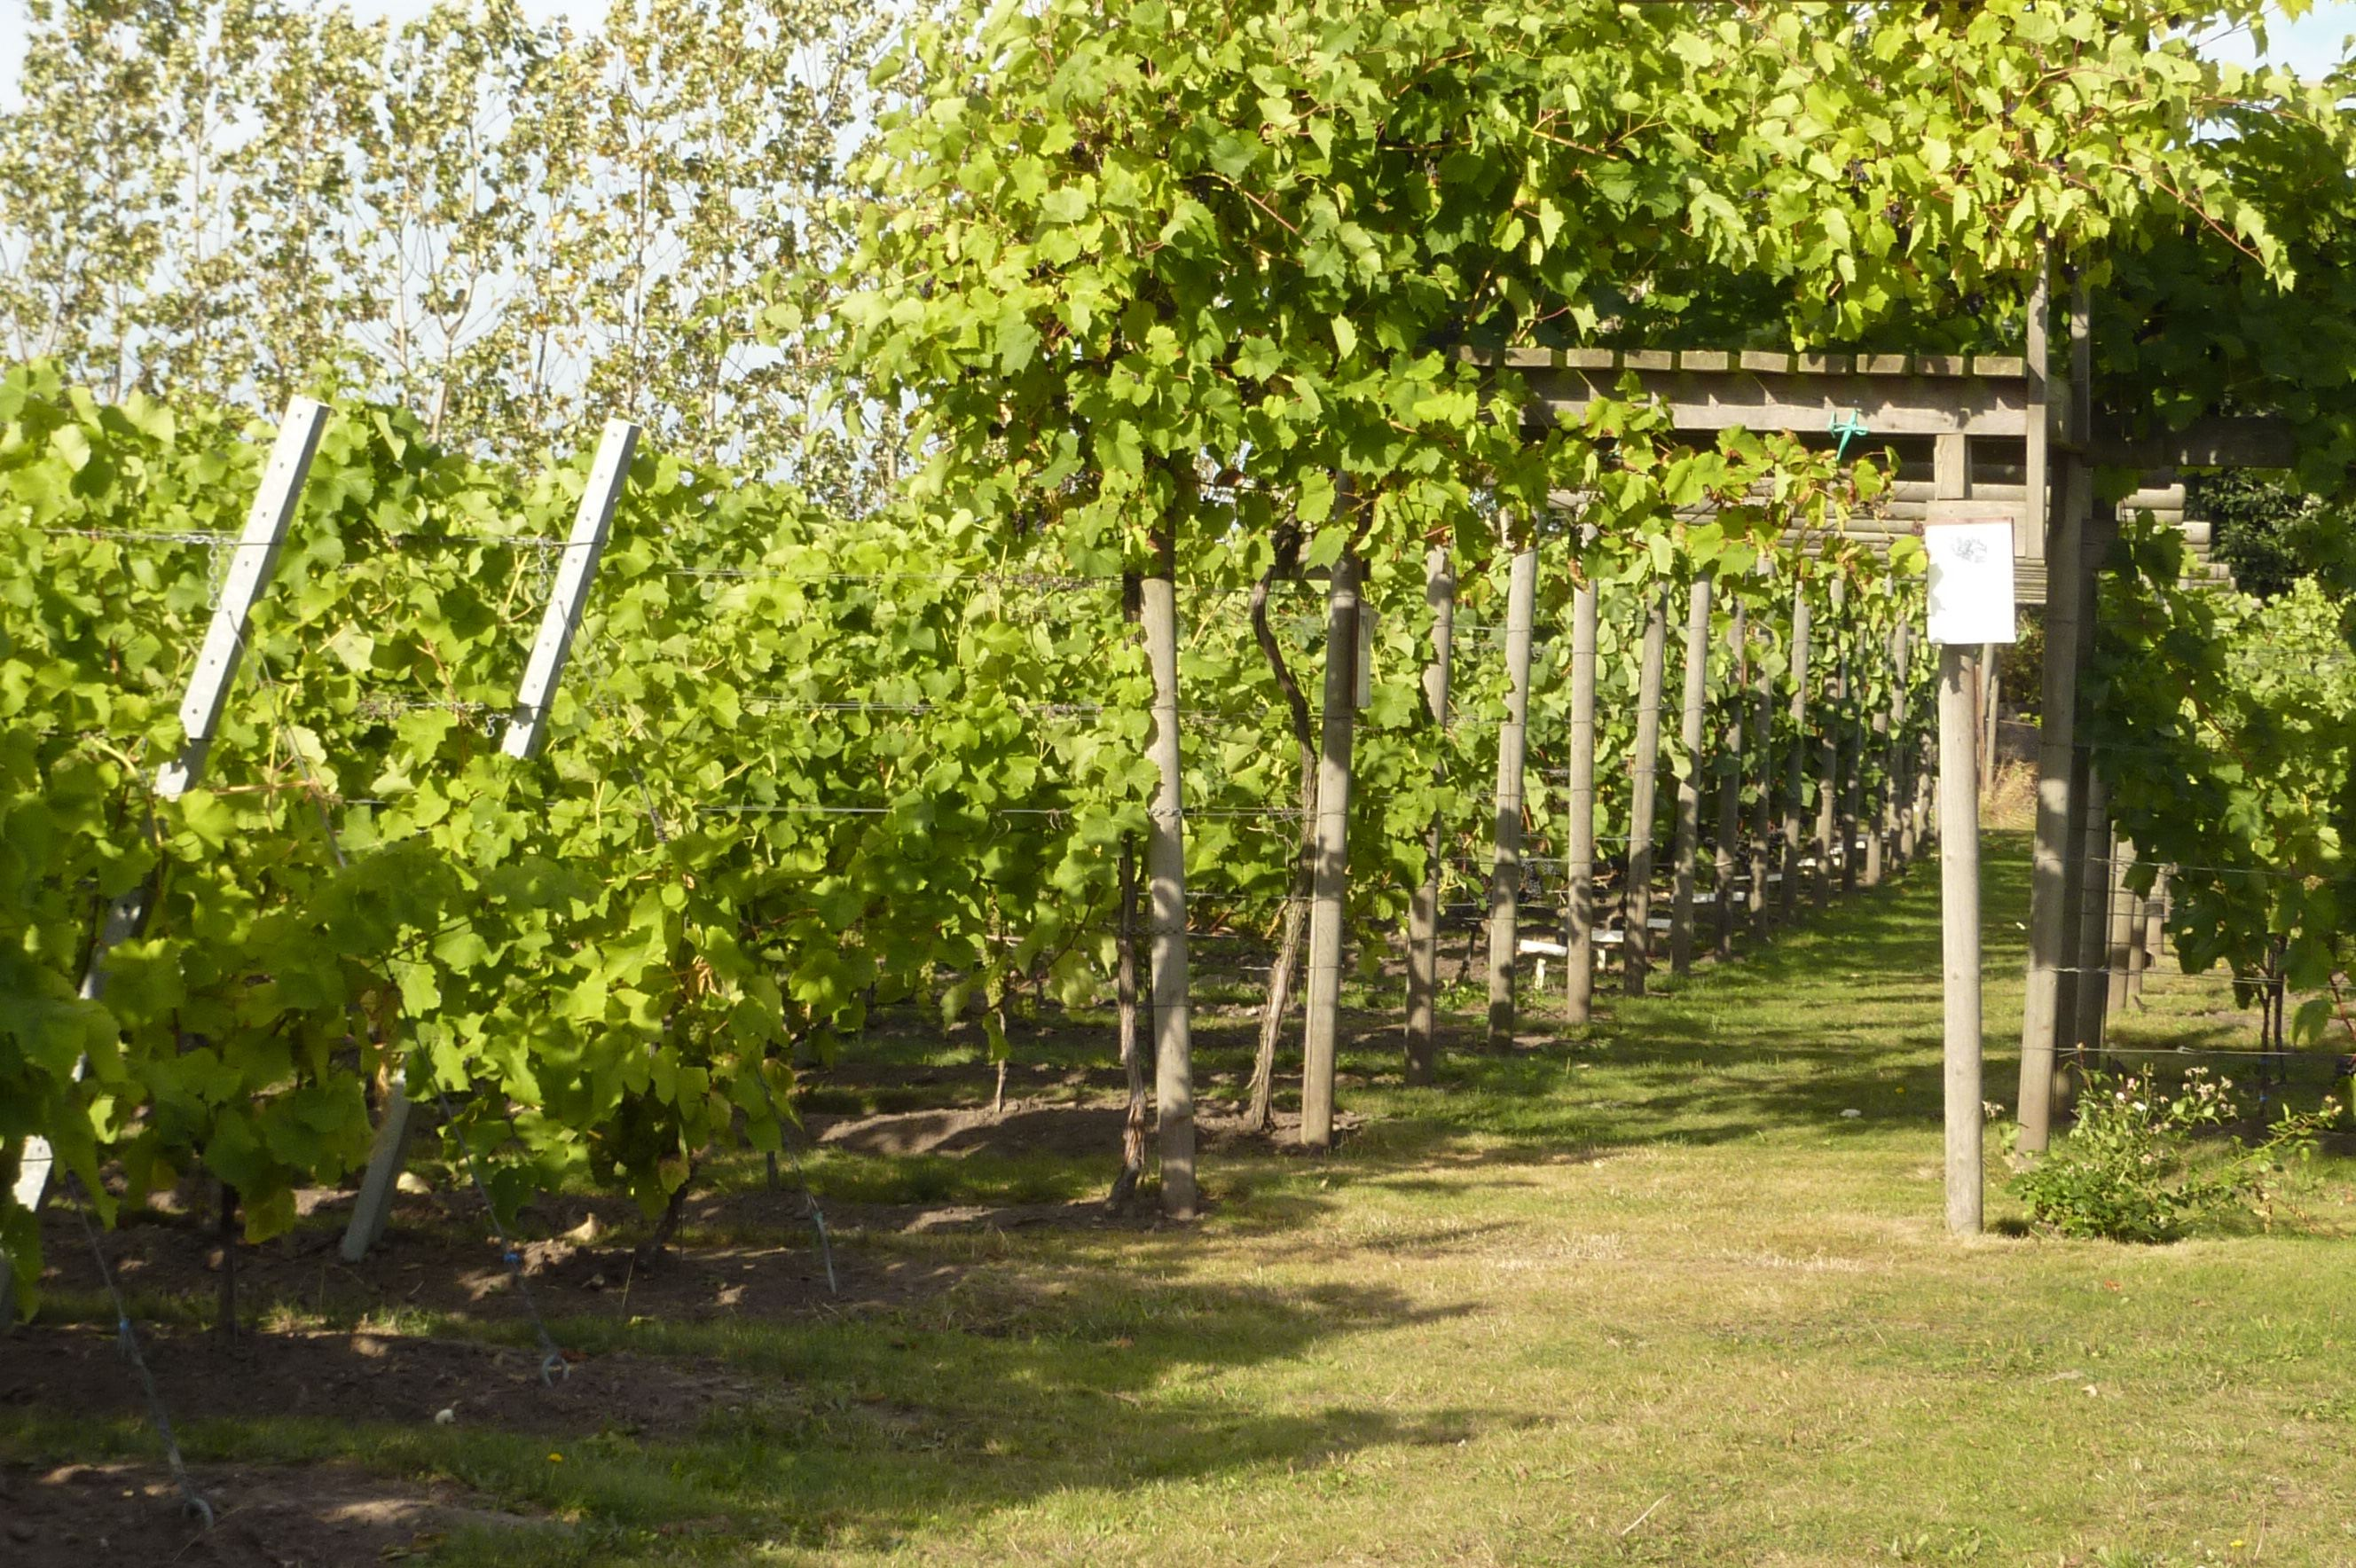 Wineyard in Klagshamn